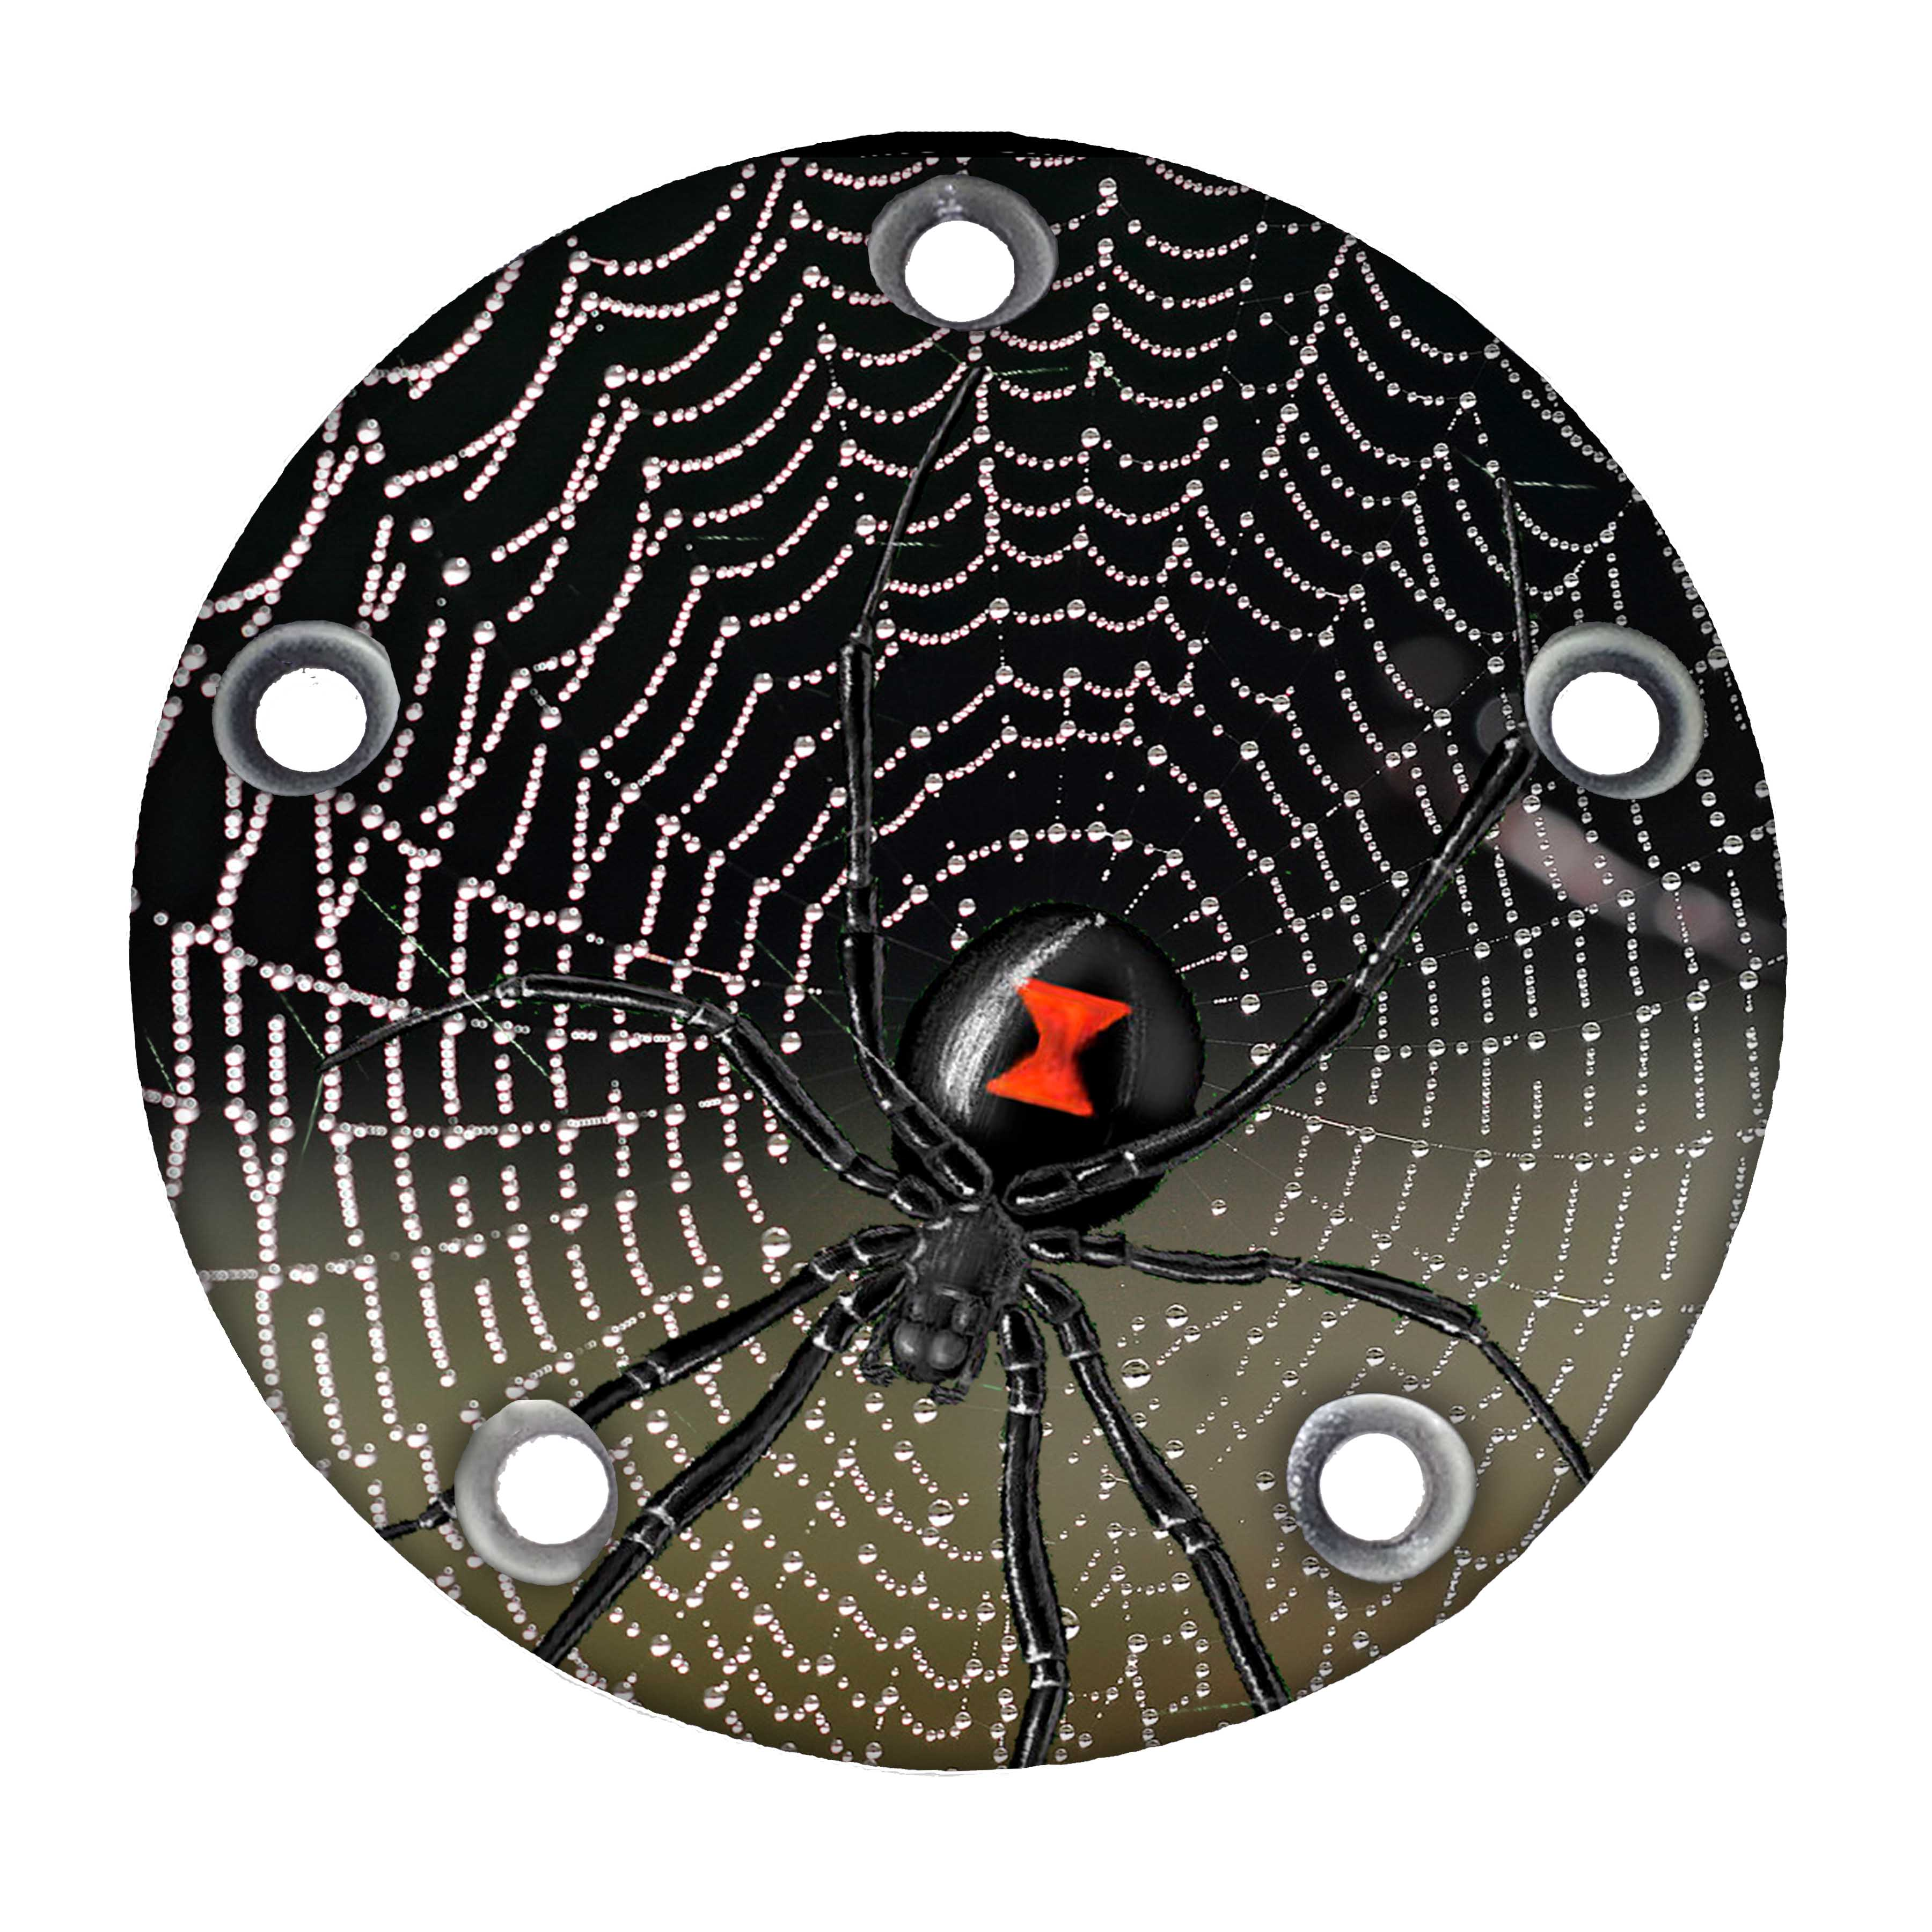 Harley Davidson Custom Timing Cover - Spider on web w/ dew